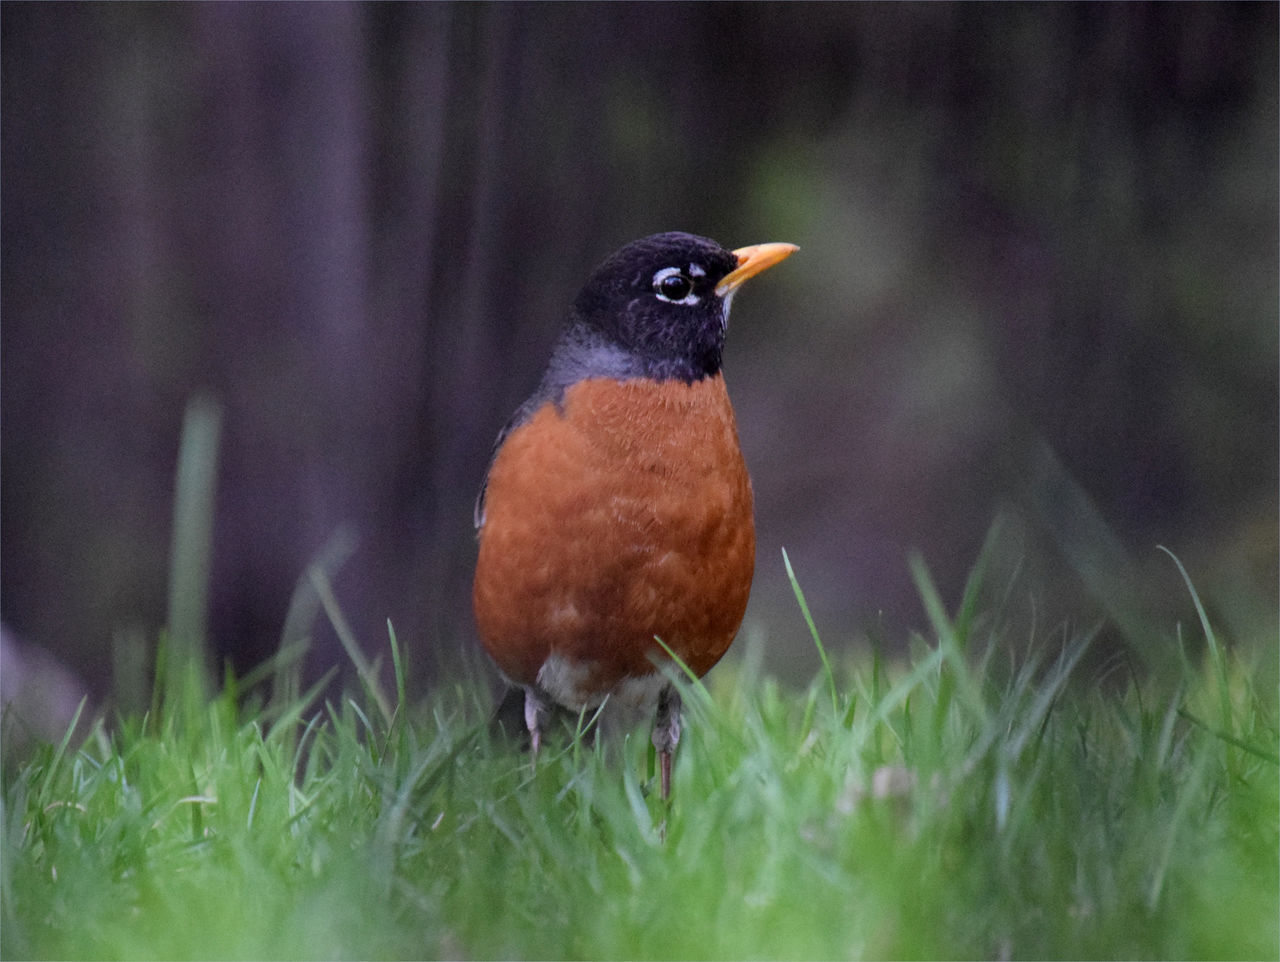 Robin American Robin Beauty In Nature Bird Bird Theme Birds In The Wild Close-up Day Field Grass Nature No People One Bird Outdoors Perching Robin